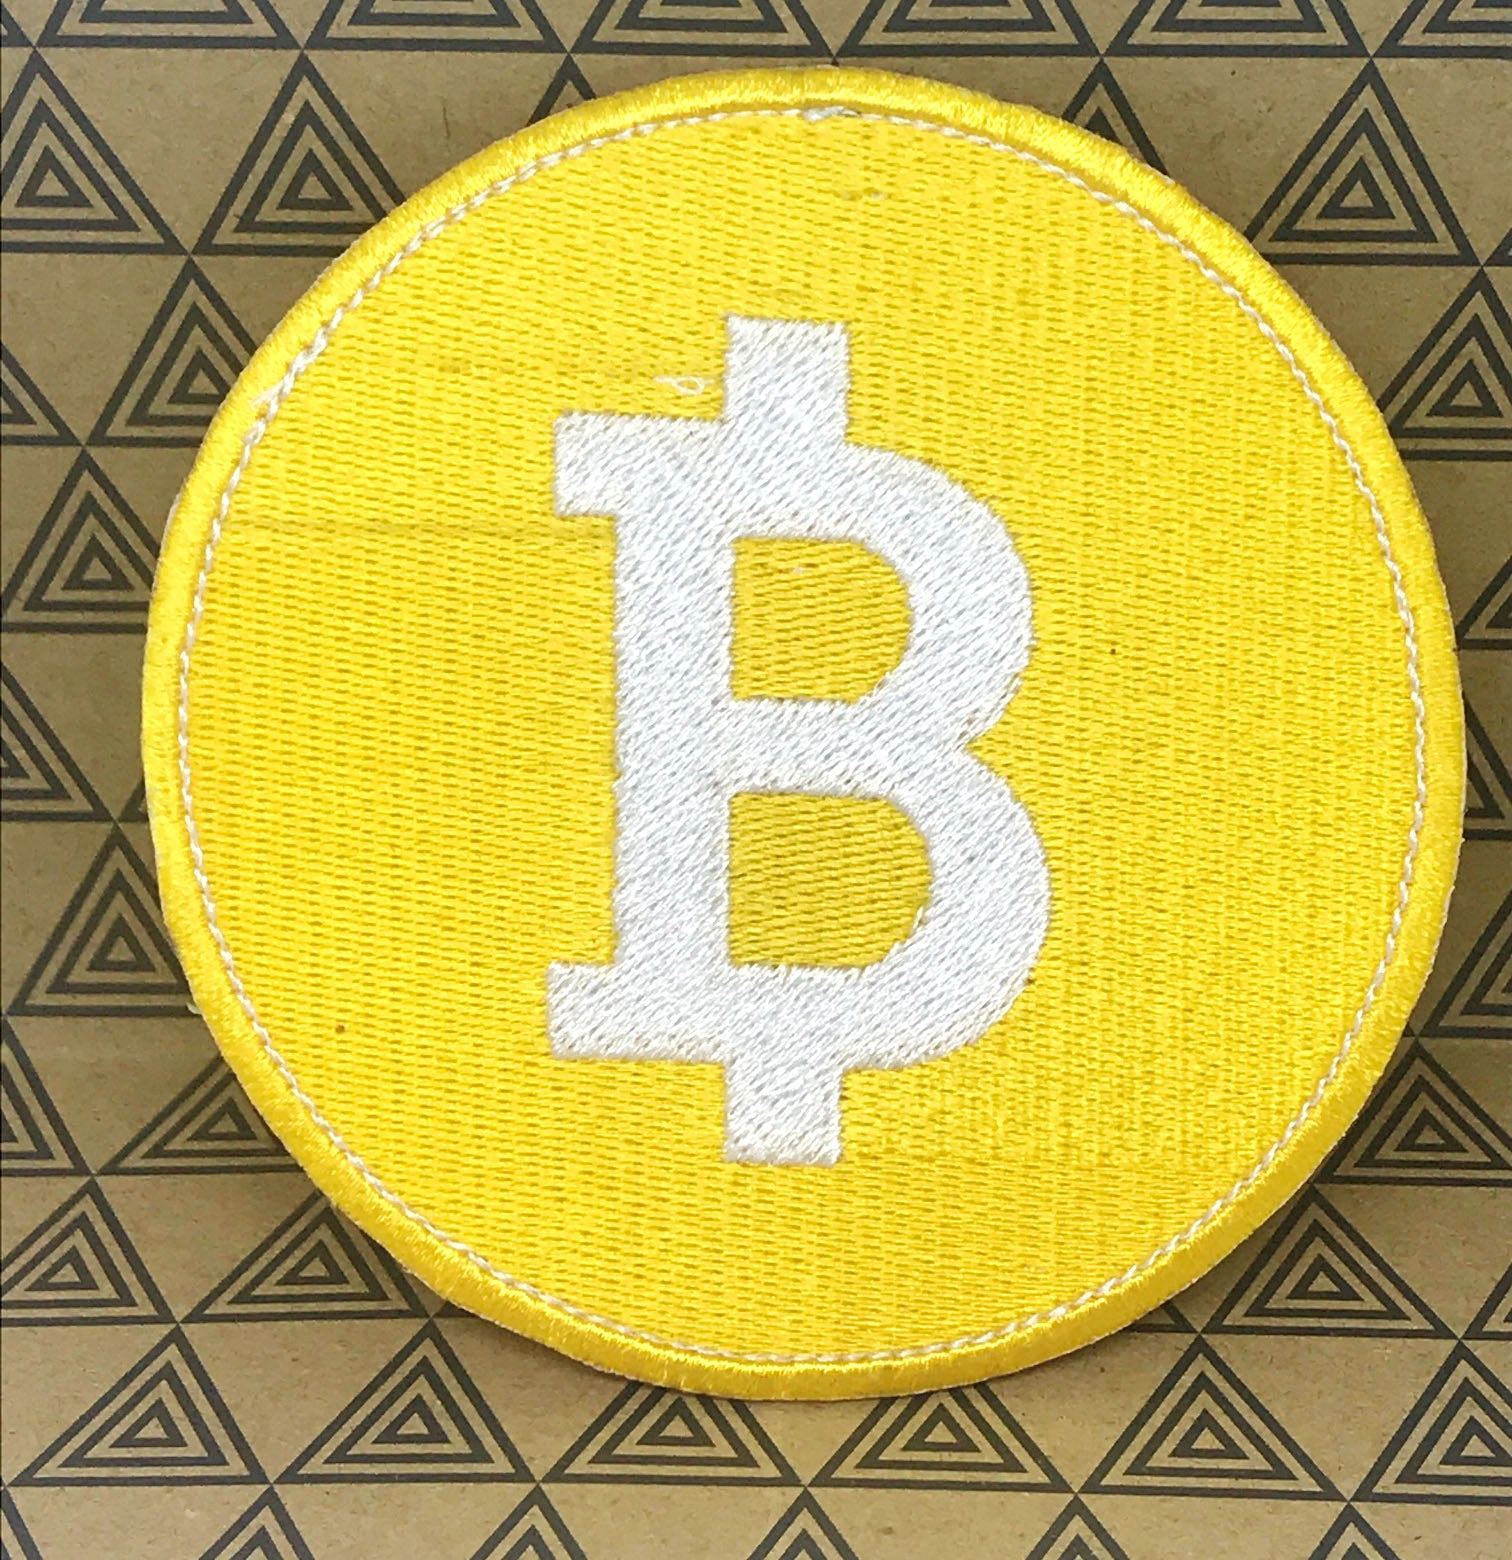 Bitcoin Digital Cryptocurrency new logo collection Iron on sew on Embroidered Patch